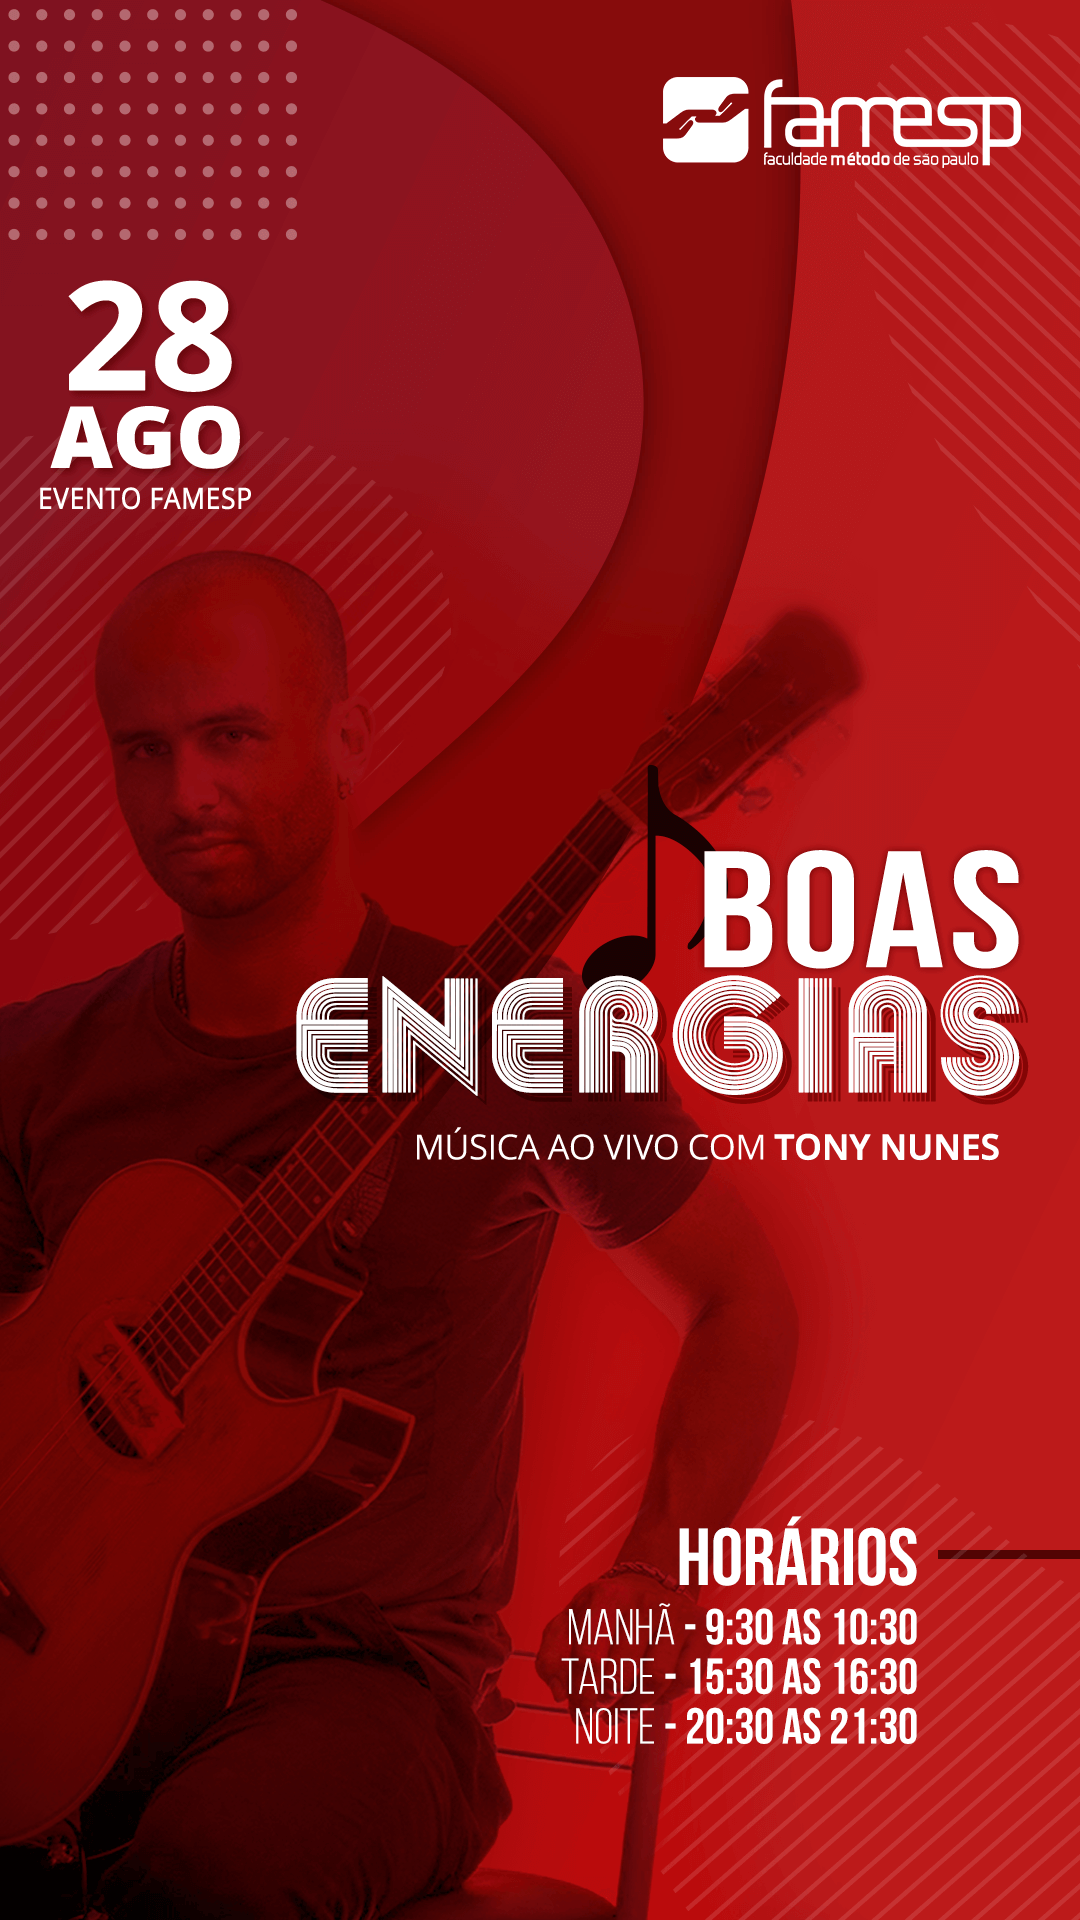 famesp-evento-boas-energias